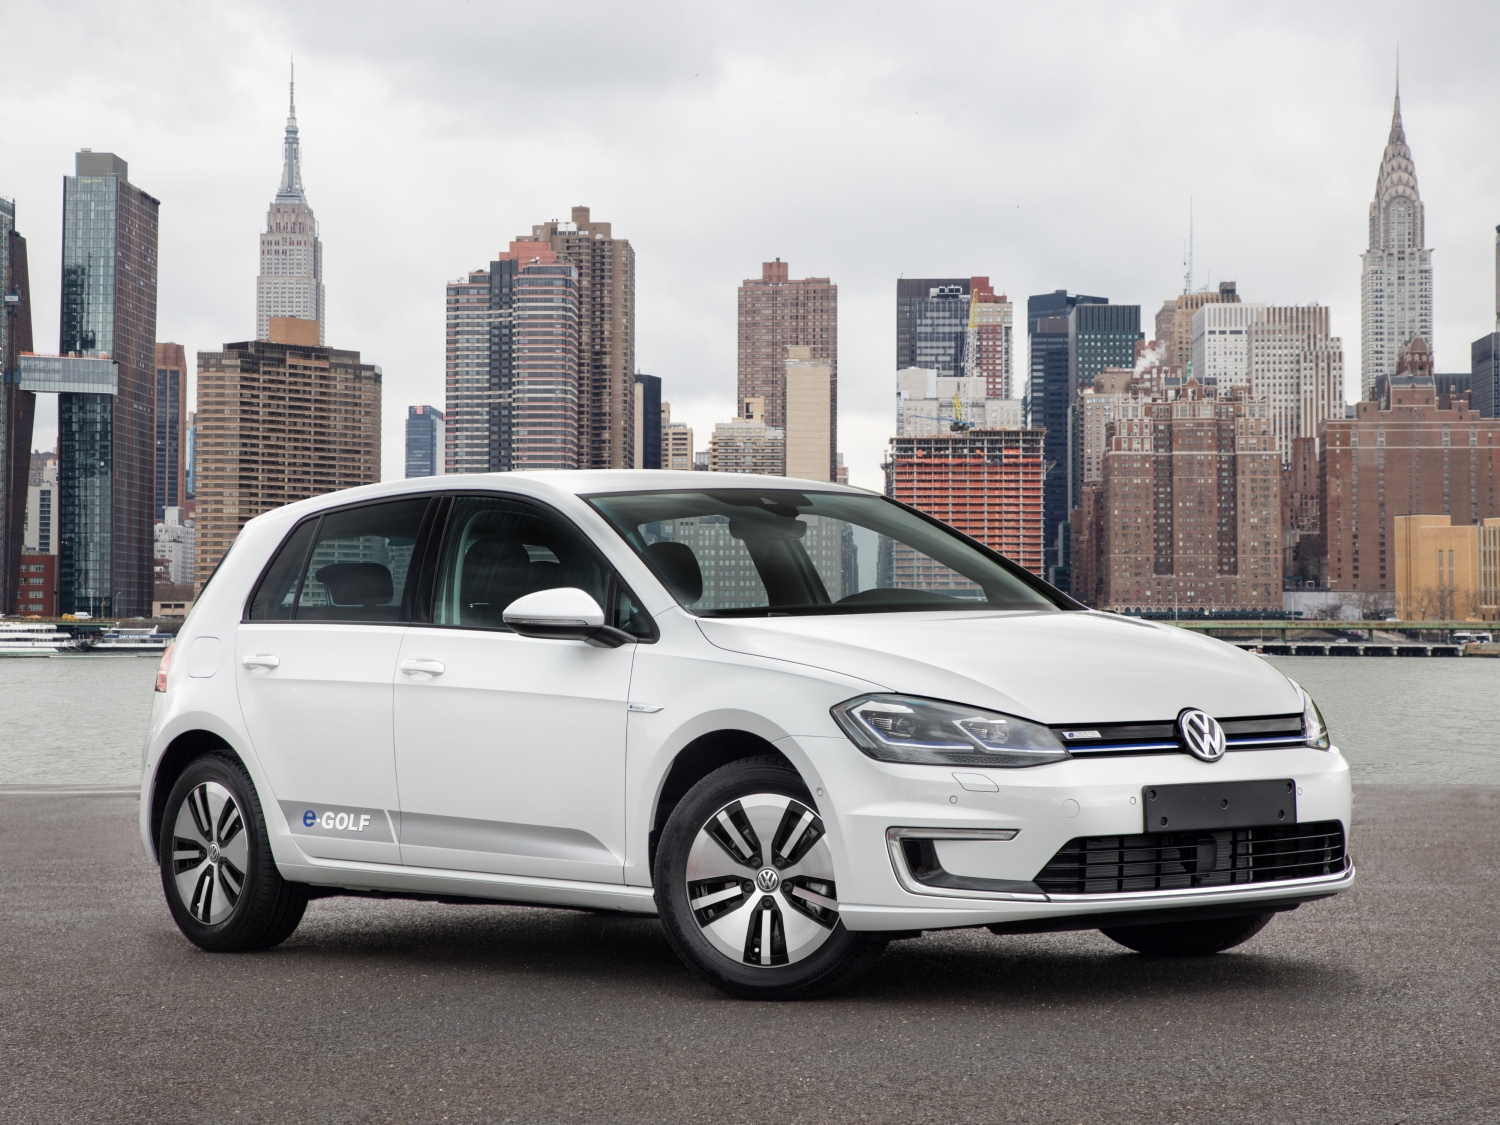 2018 Volkswagen e-Golf white